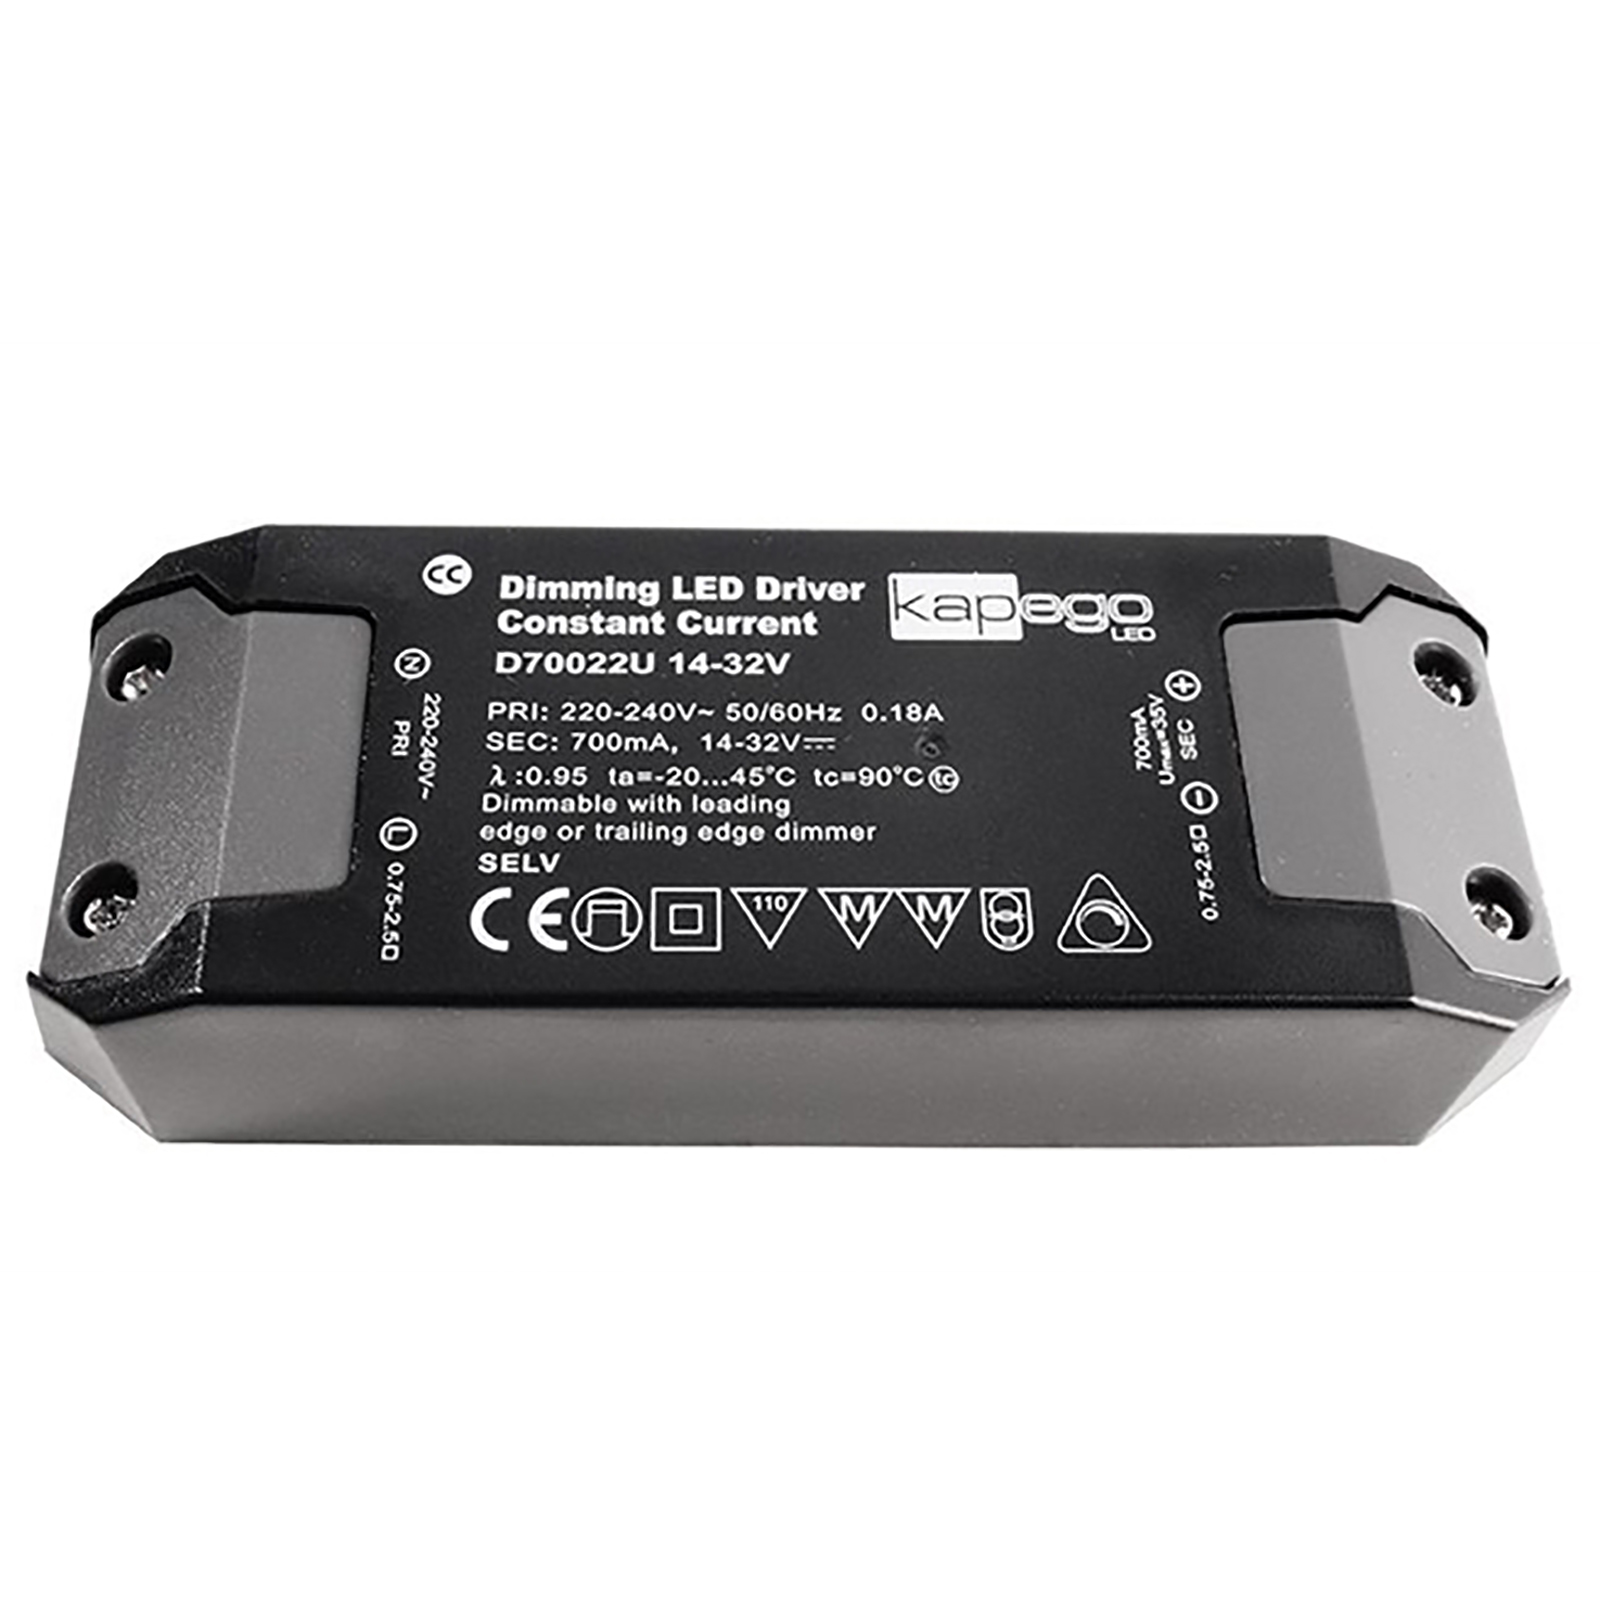 Led driver 22W power supply dimmable dimmer 14-32v DC 700mA 220-240V LED